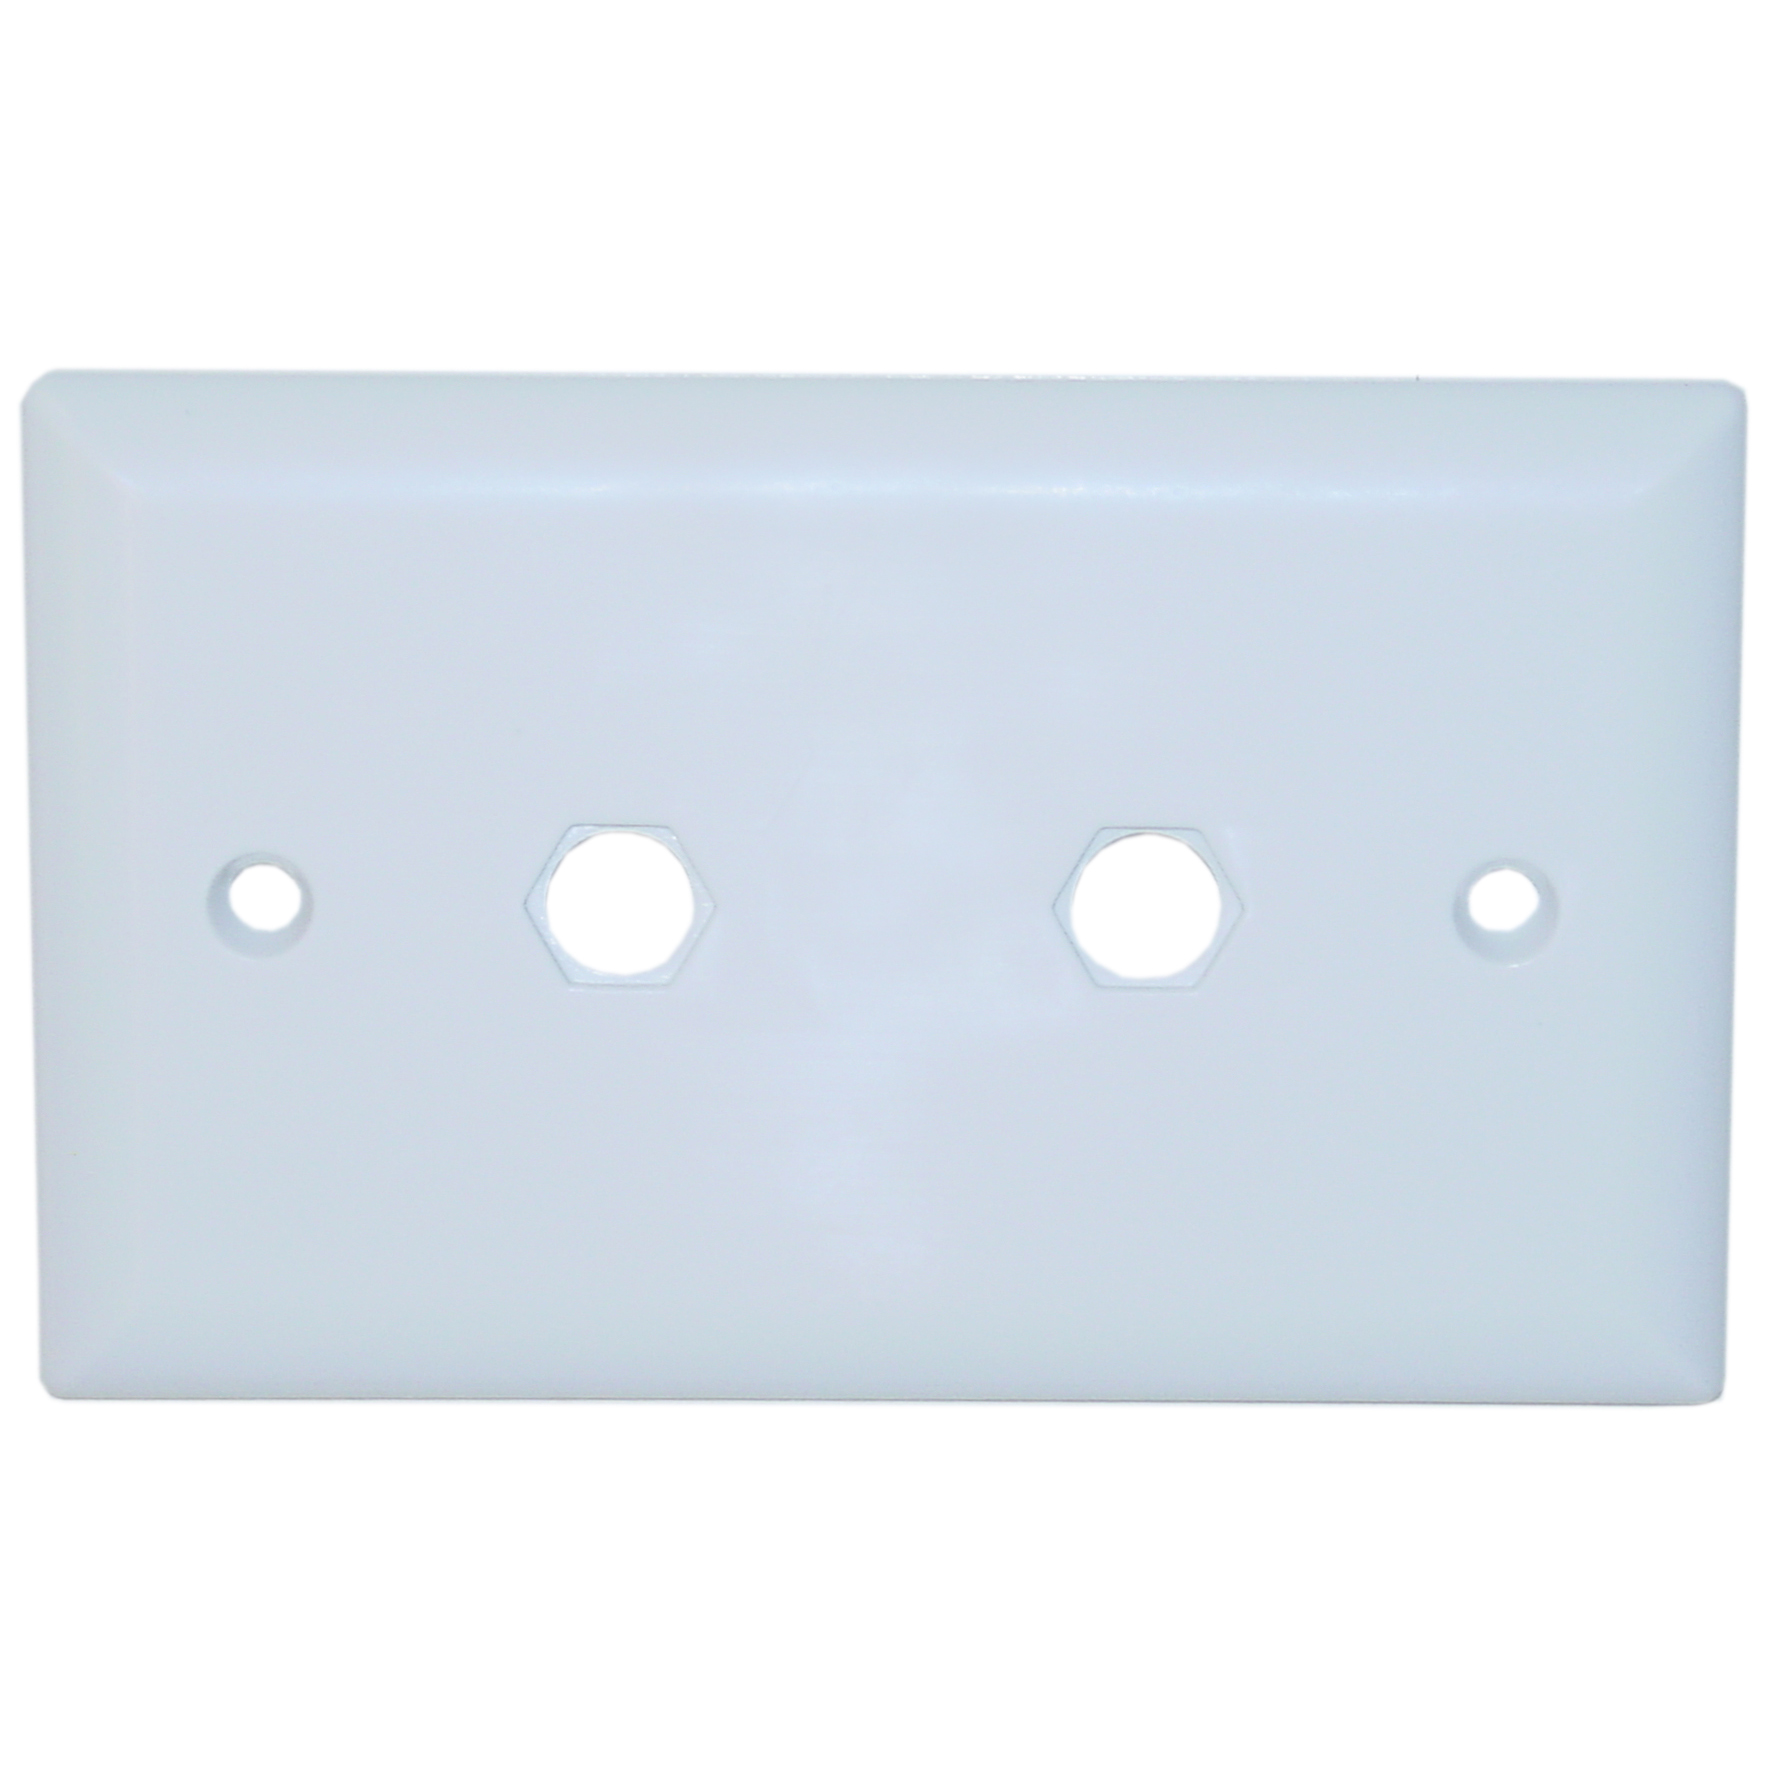 White Wall Plate 2 Holes For Connectors Cablewholesale